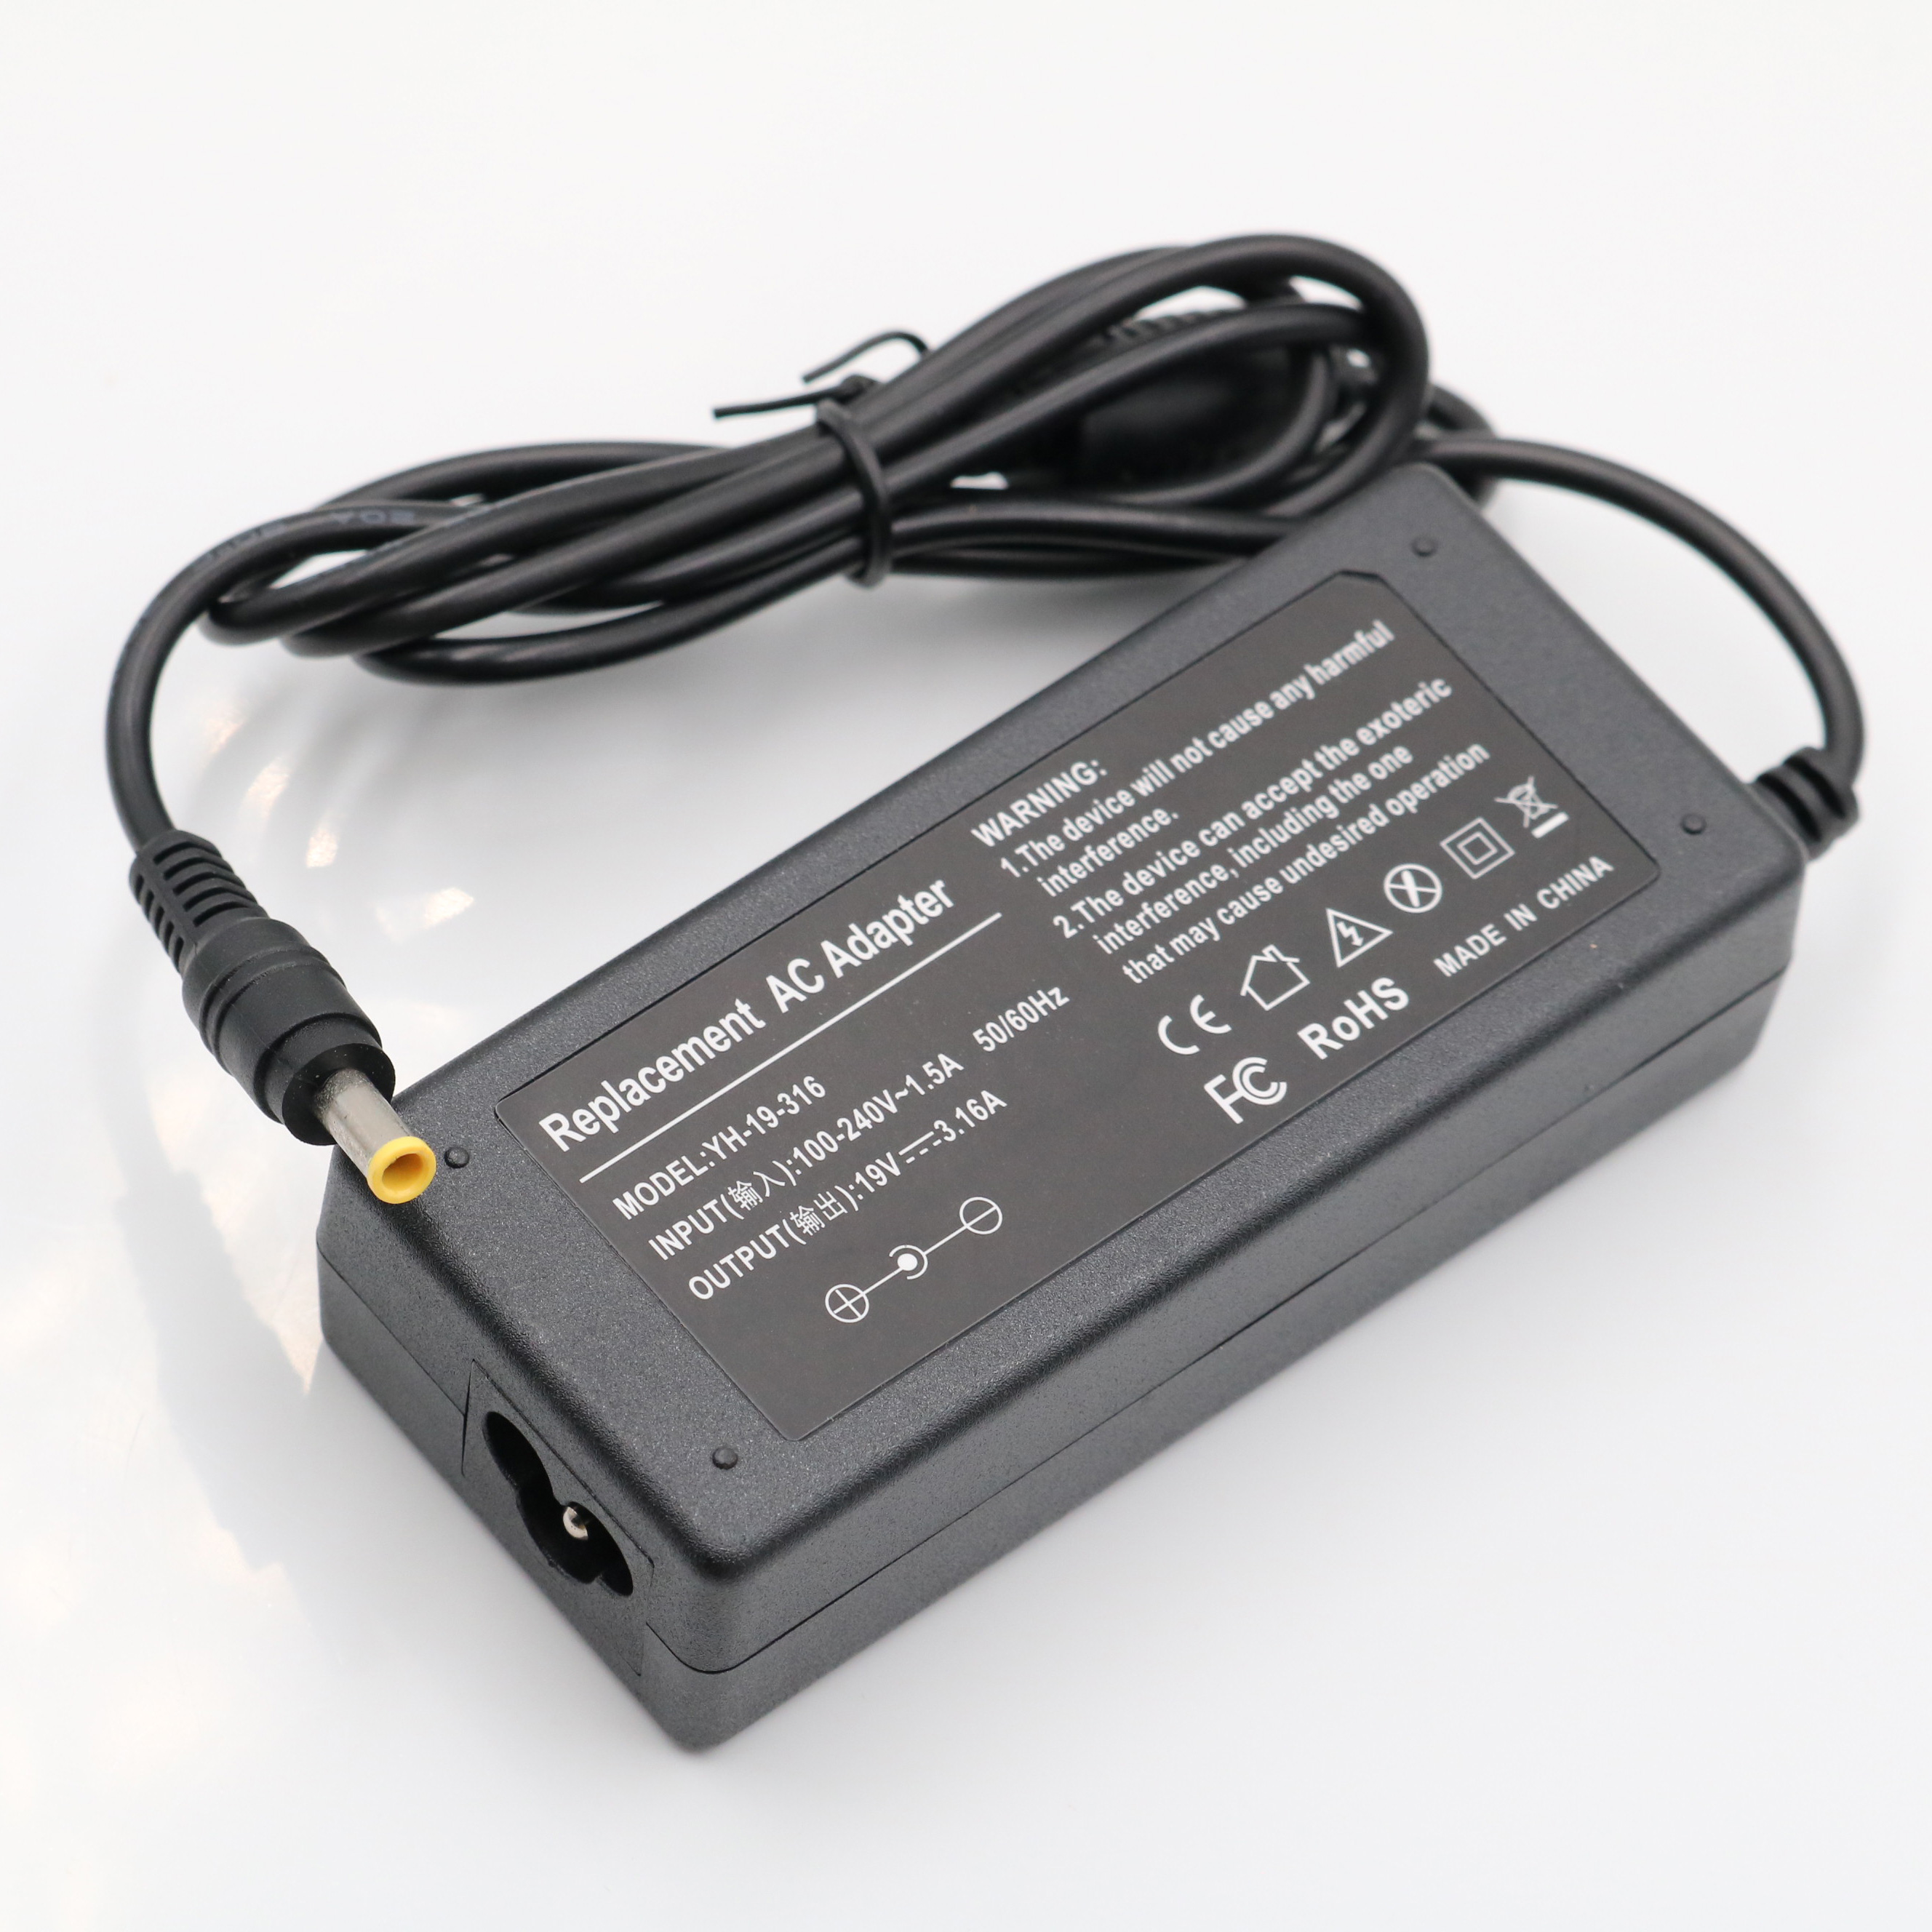 19V 3.15A 5.5*3.0mm AC Adapter Charger For Notebook Samsung BA44-00243A AD-6019 AP04214-UV High Quality